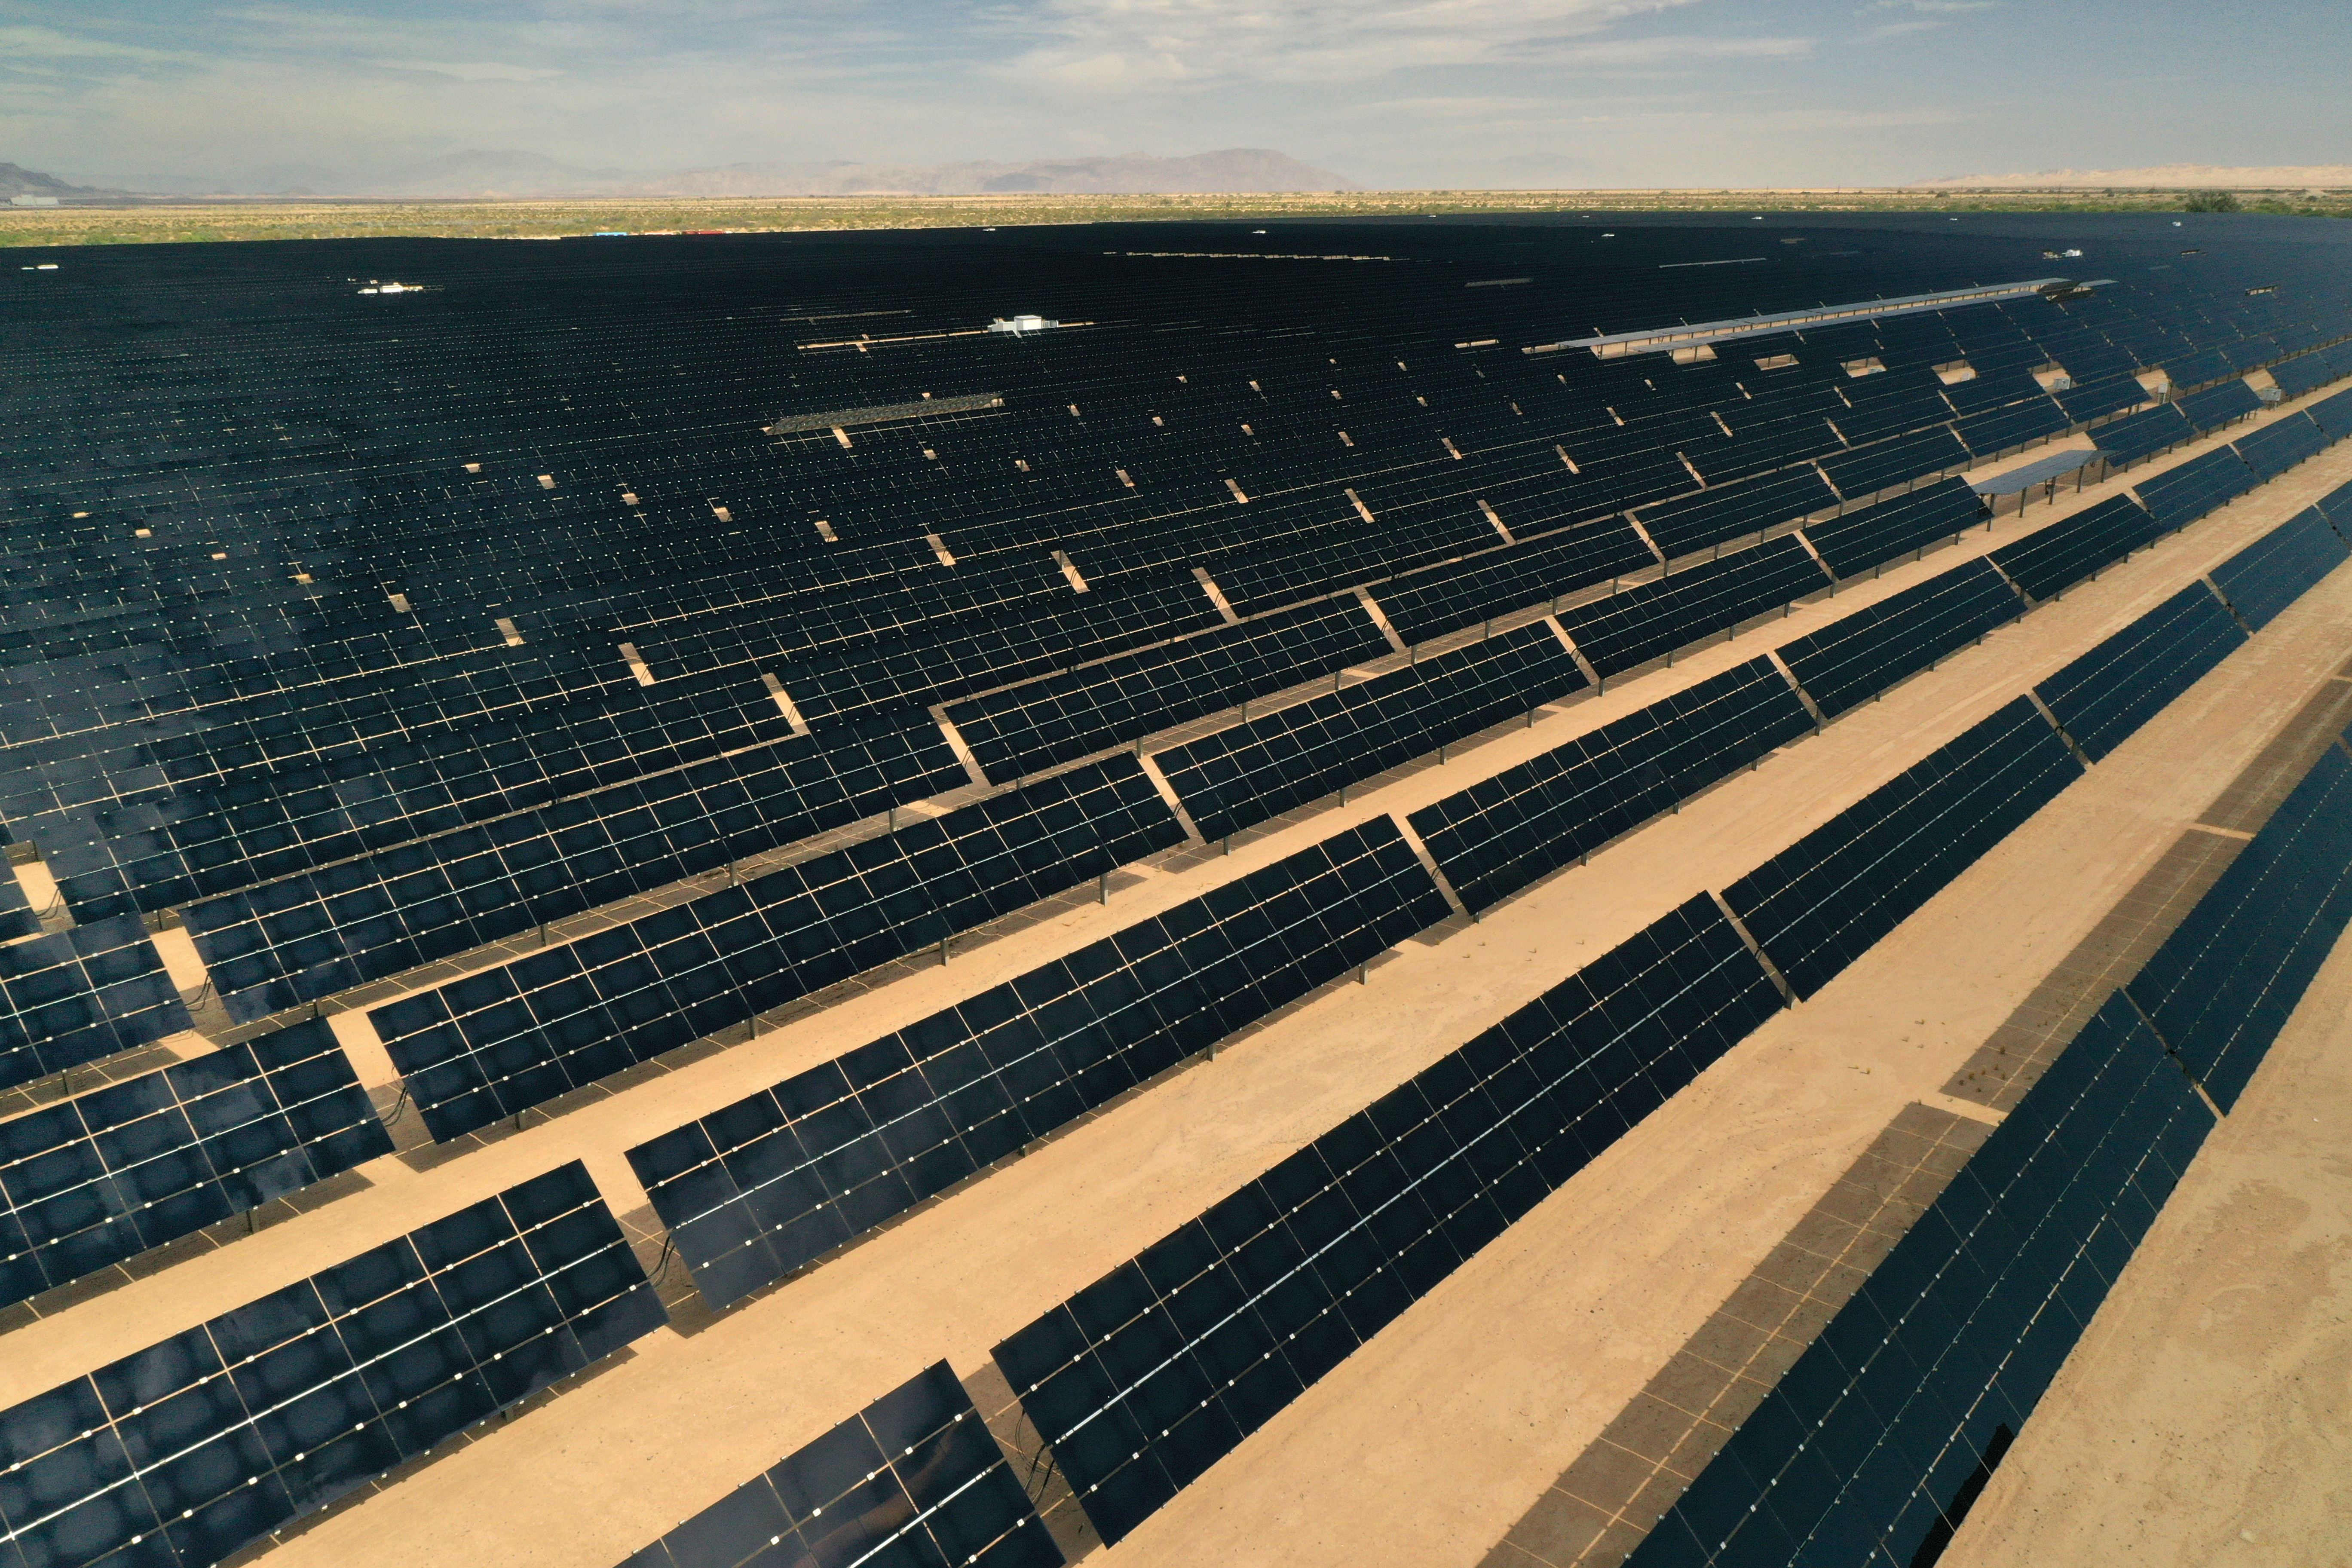 Arrays of photovoltaic solar panels are seen at the Tenaska Imperial Solar Energy Center South in this aerial photo taken over El Centro, California, U.S., May 29, 2020. Picture taken with a drone. REUTERS/Bing Guan/File Photo